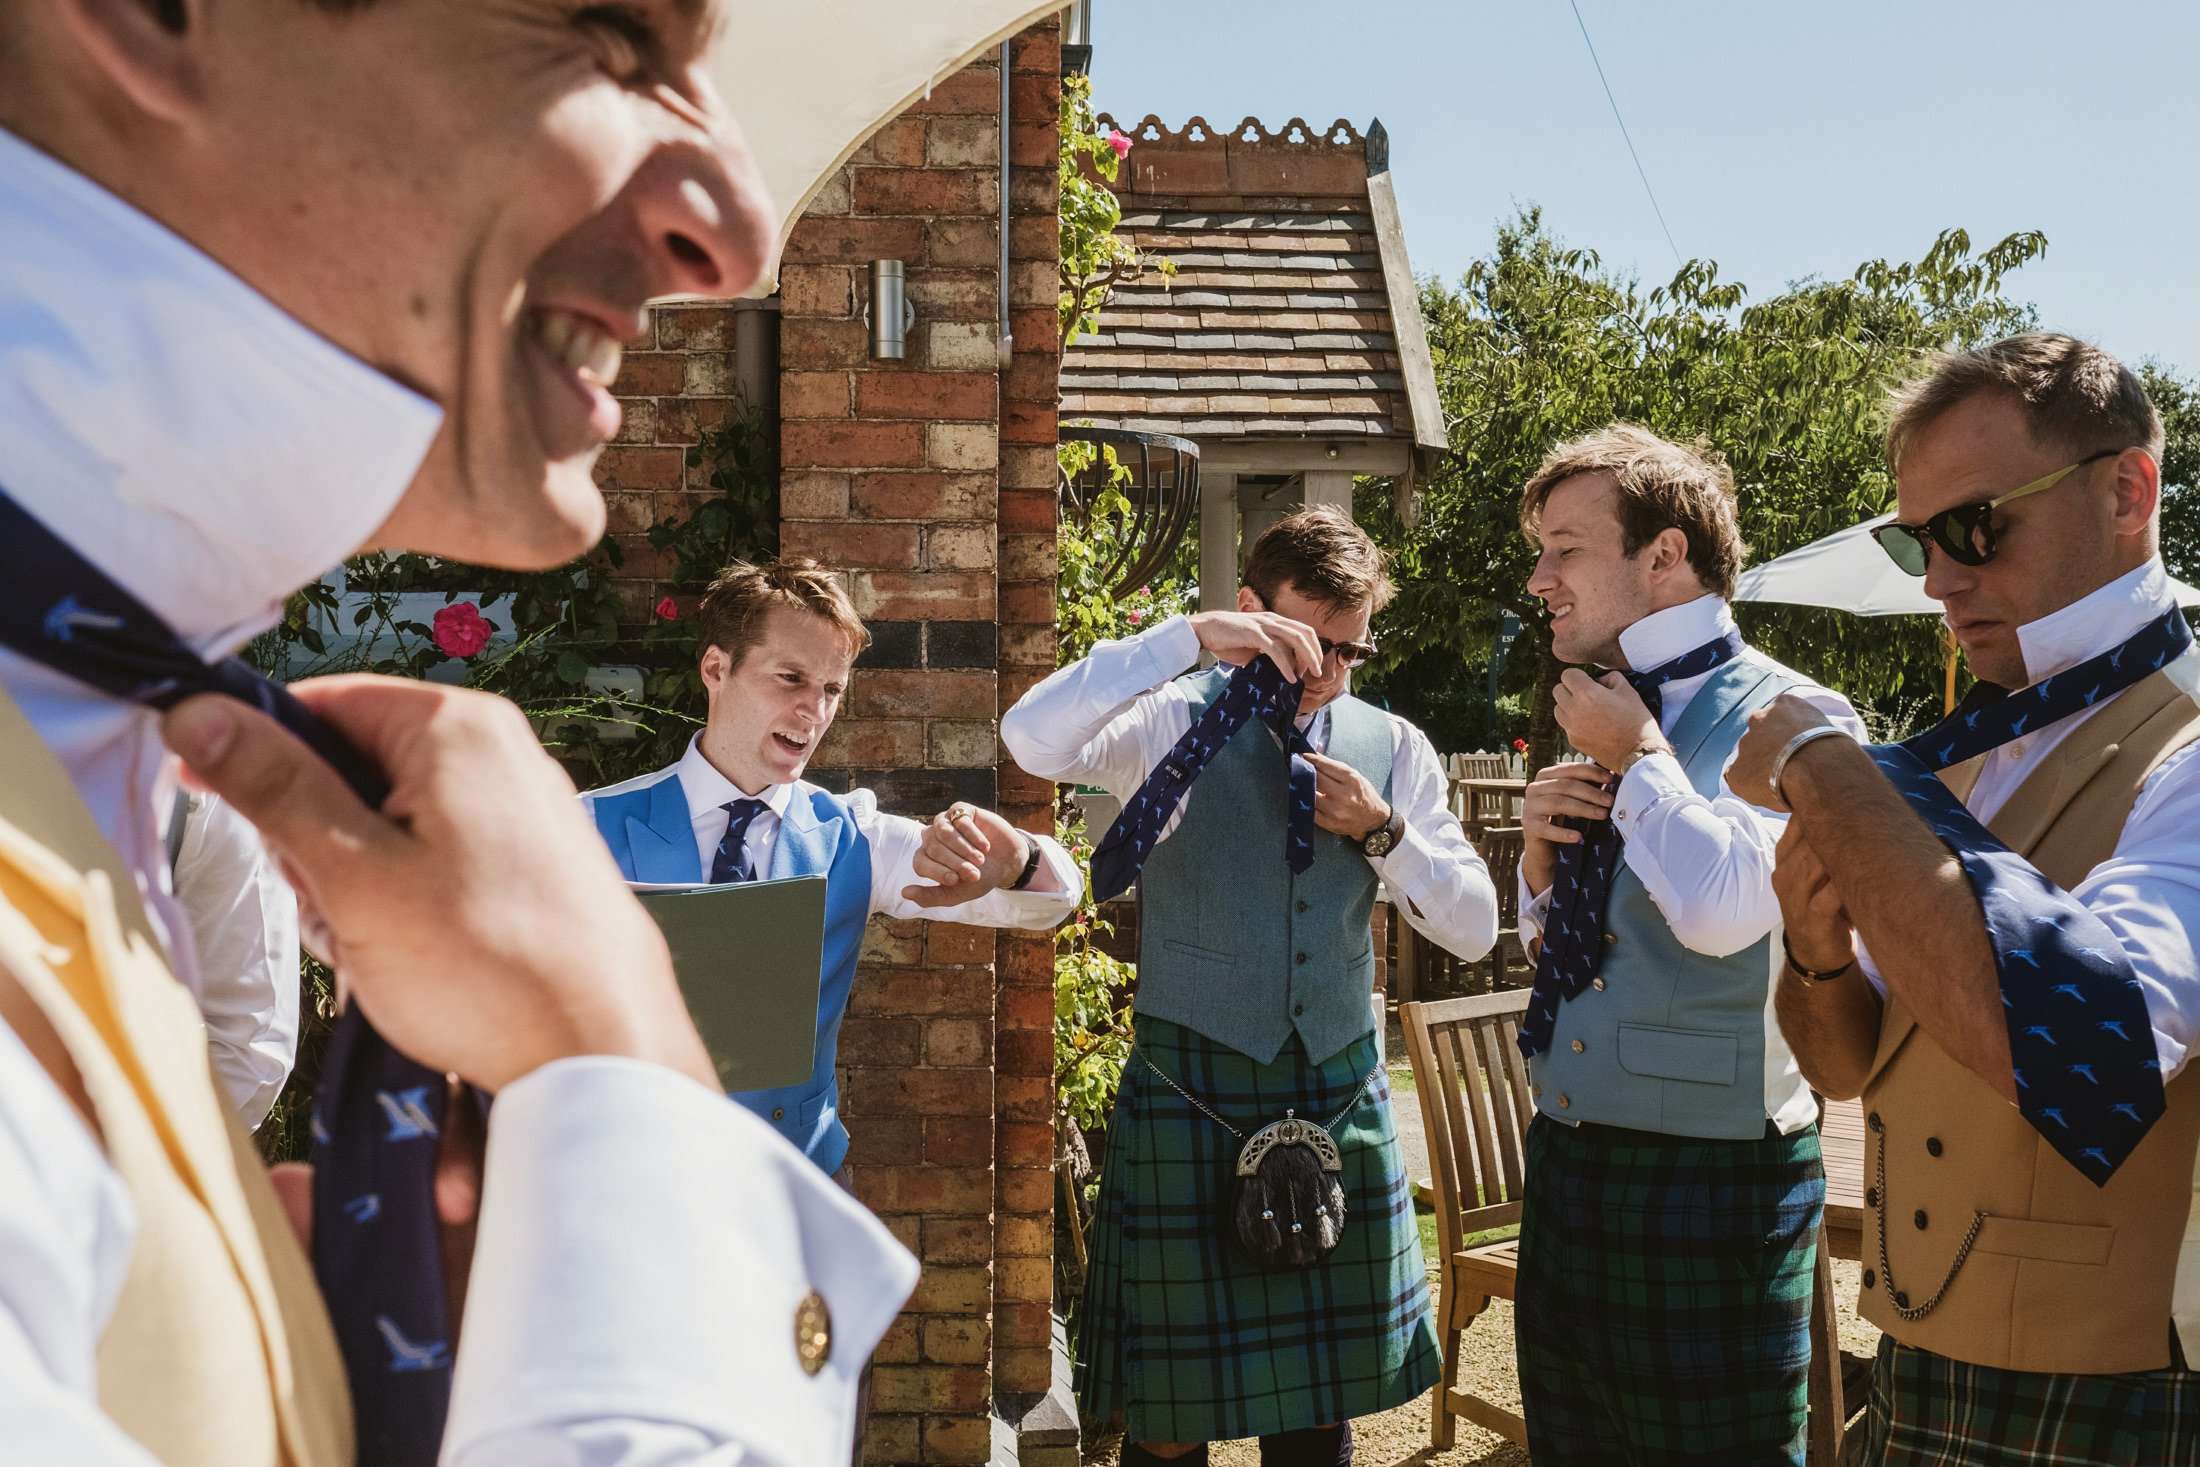 groom and groomsmen getting ready outside at the pub